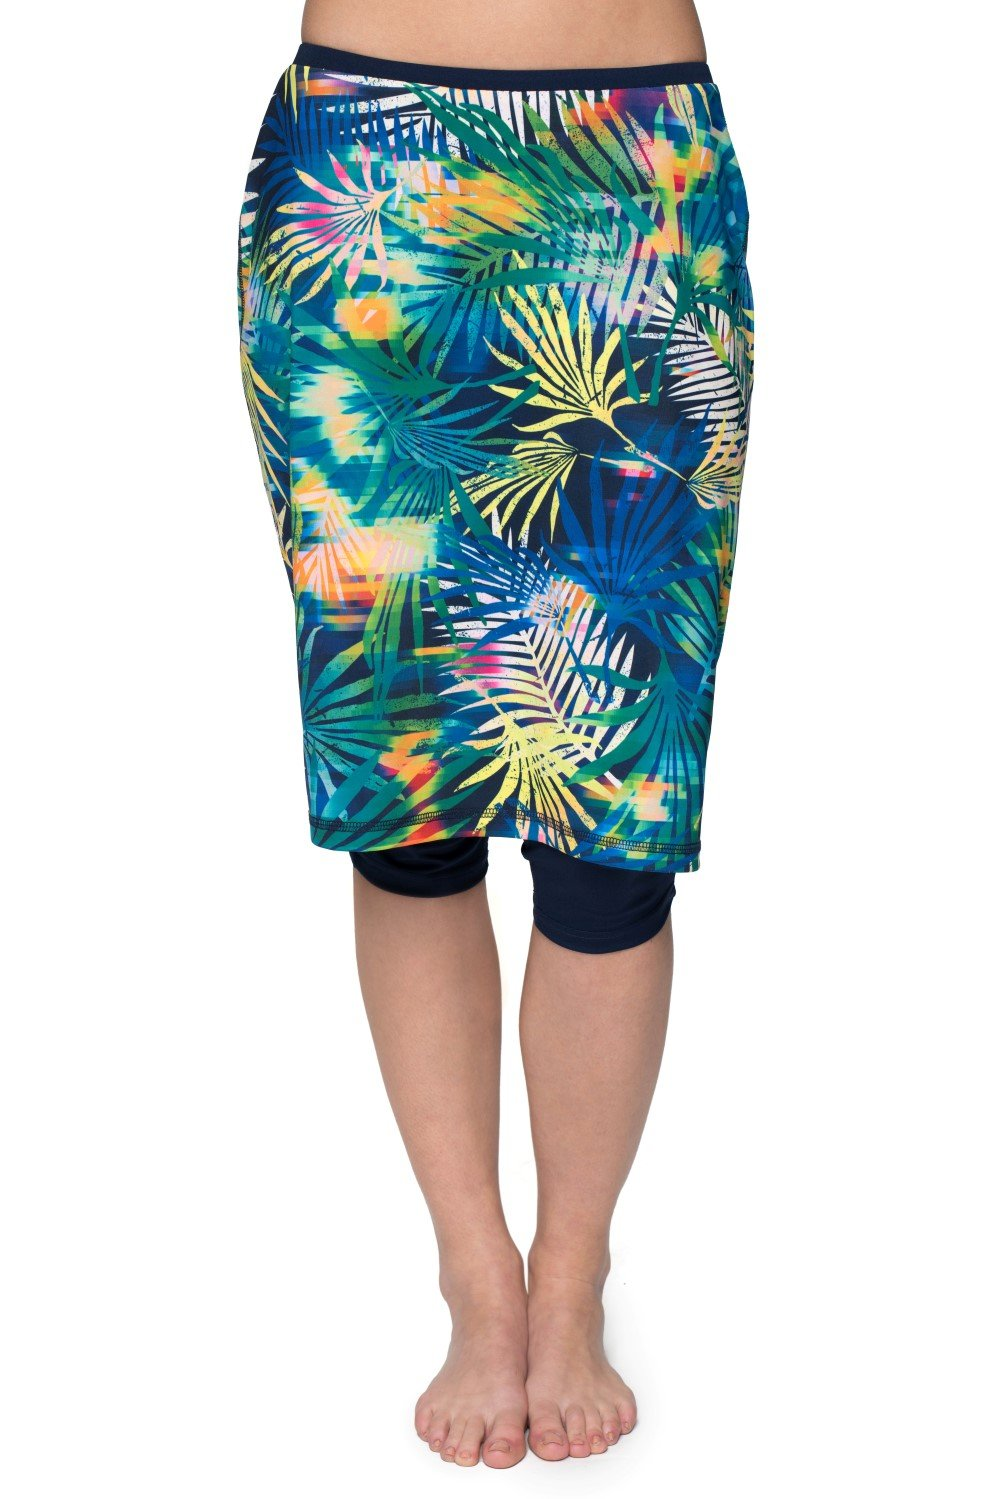 HydroChic Inspire Swim and Sport Skirt - Chlorine Proof - Night Swim/Navy, 2X Plus